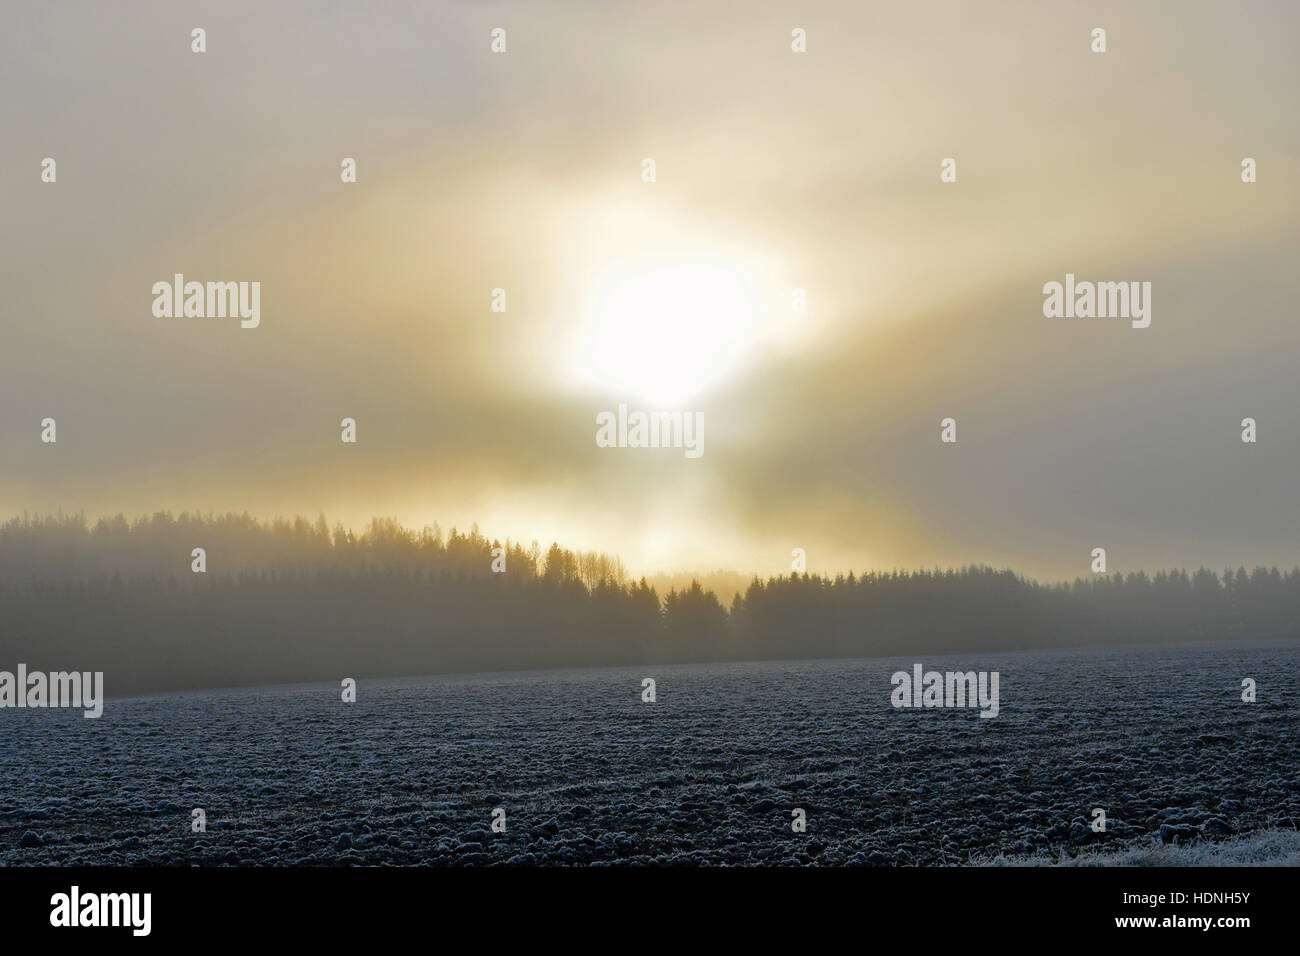 Sun shining through clouds and fog. Location: Aura, Finland - Stock Image